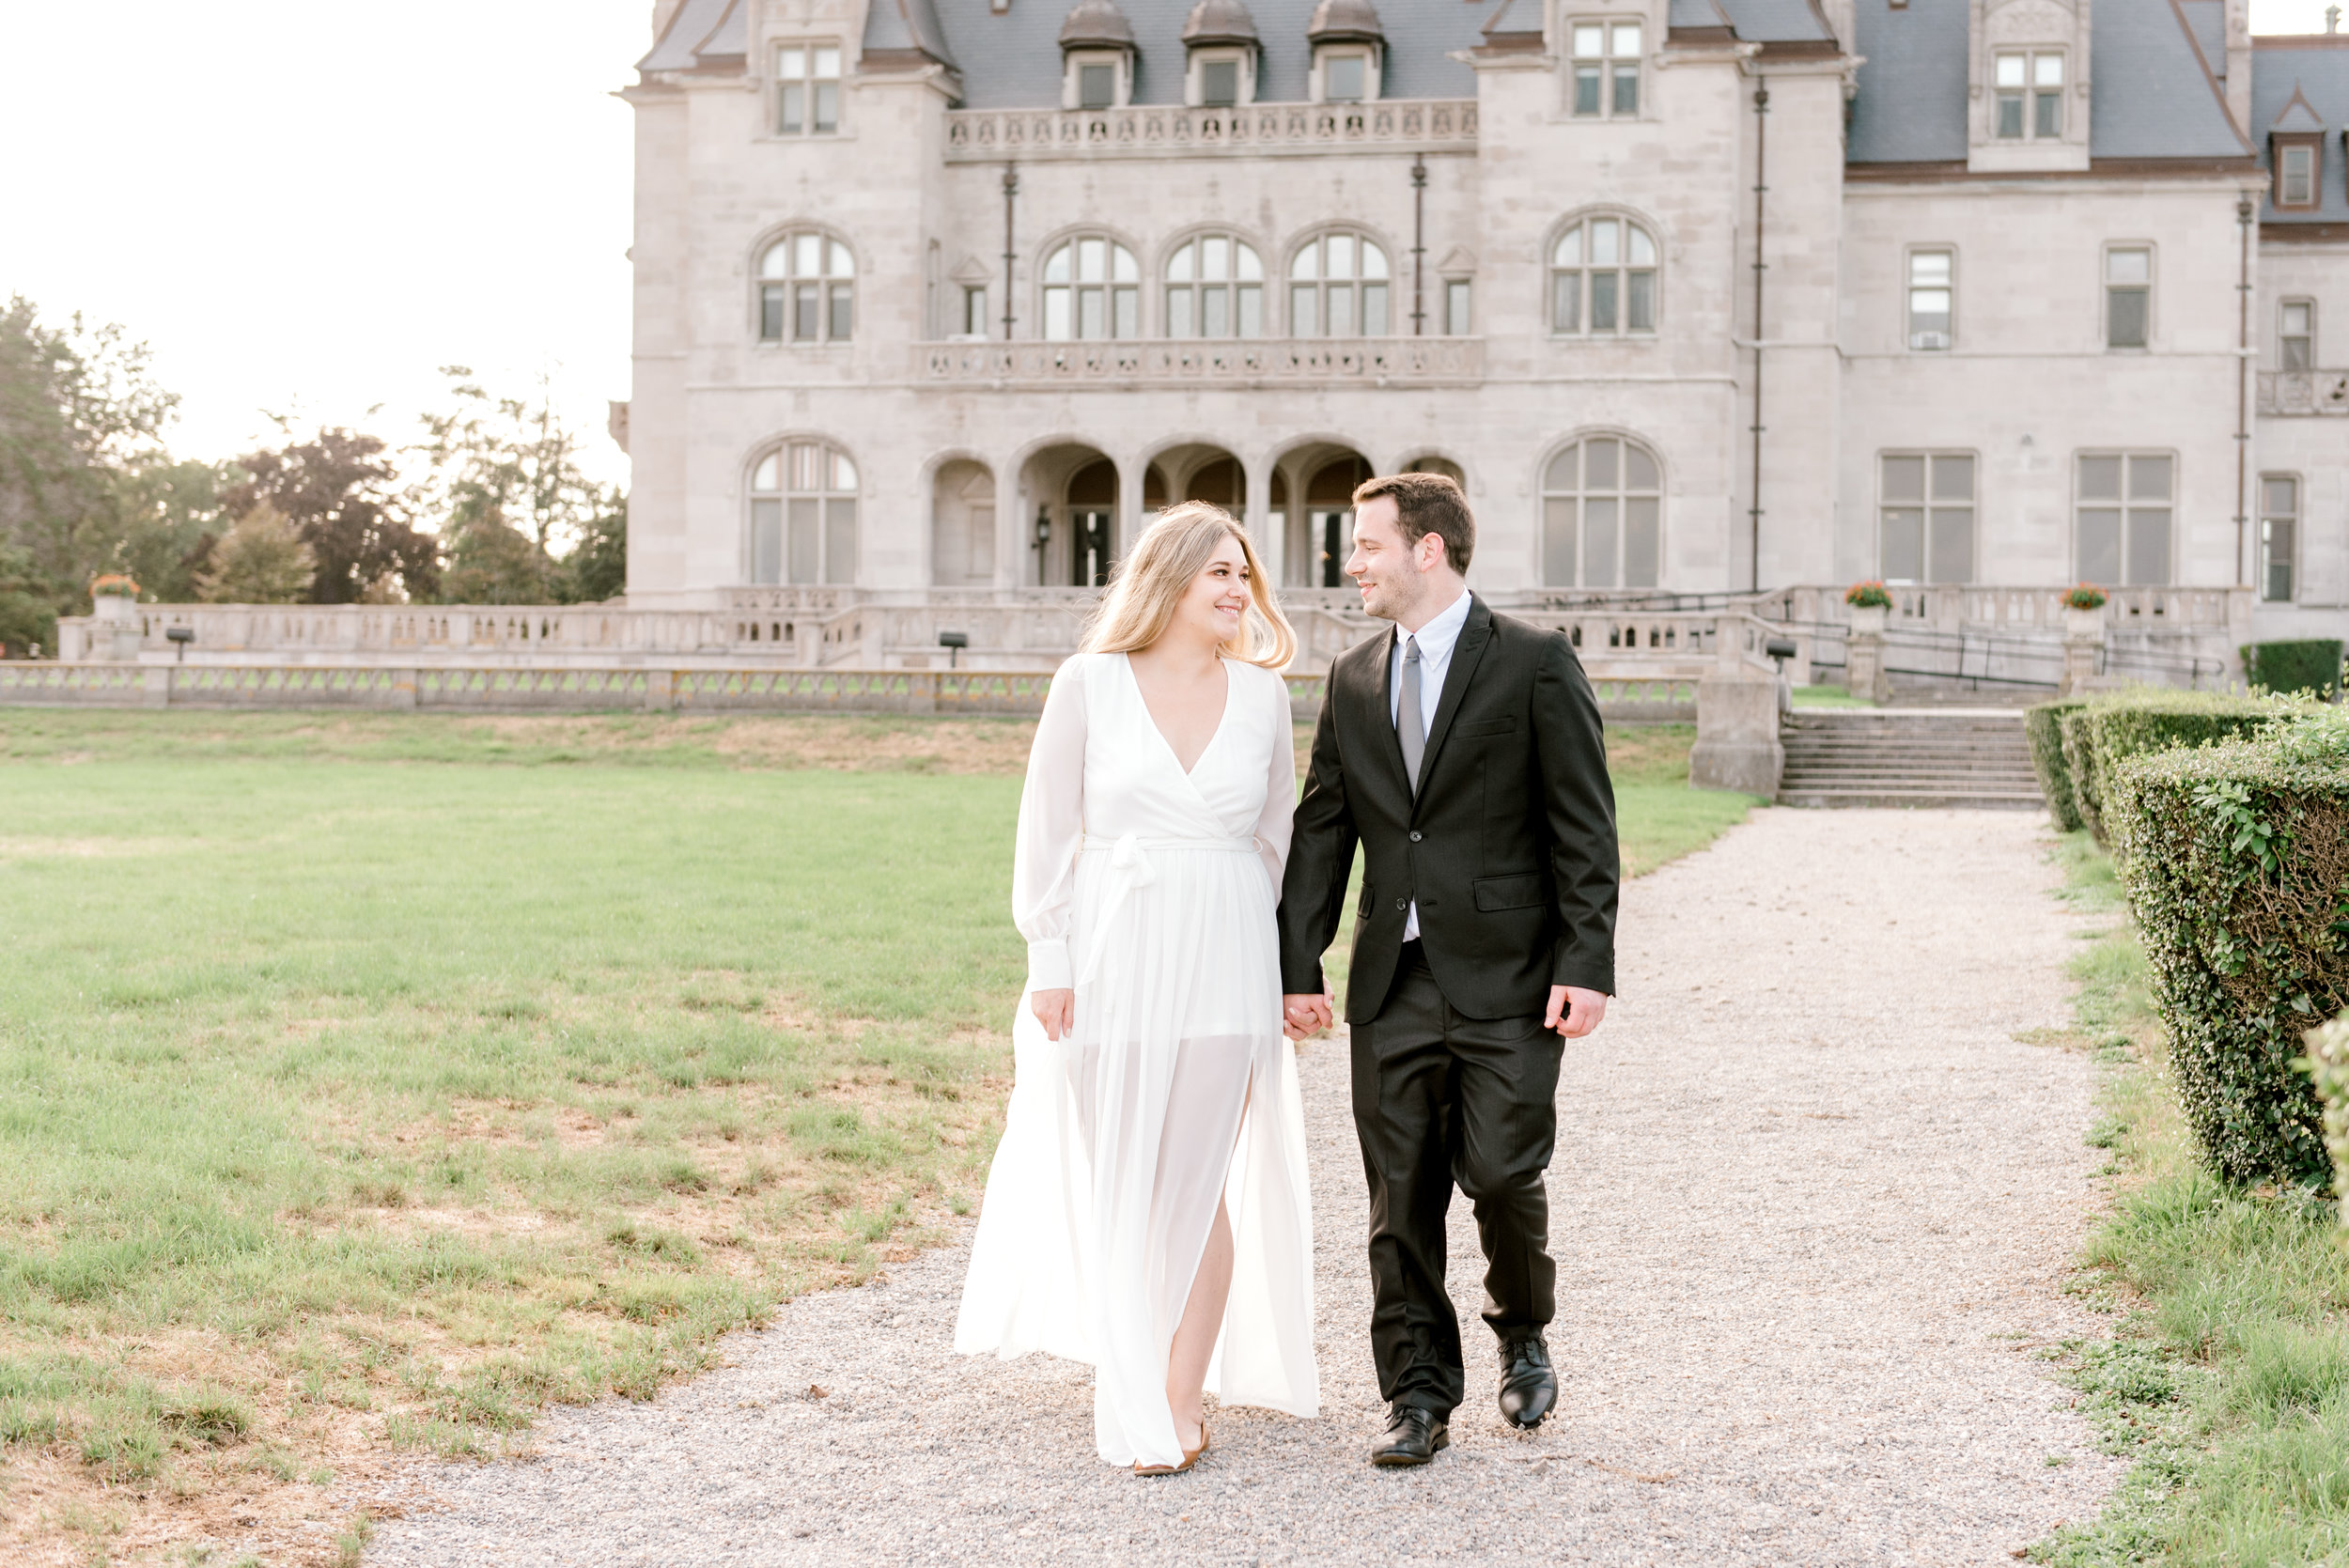 heather_and_connor_engagement-55.jpg